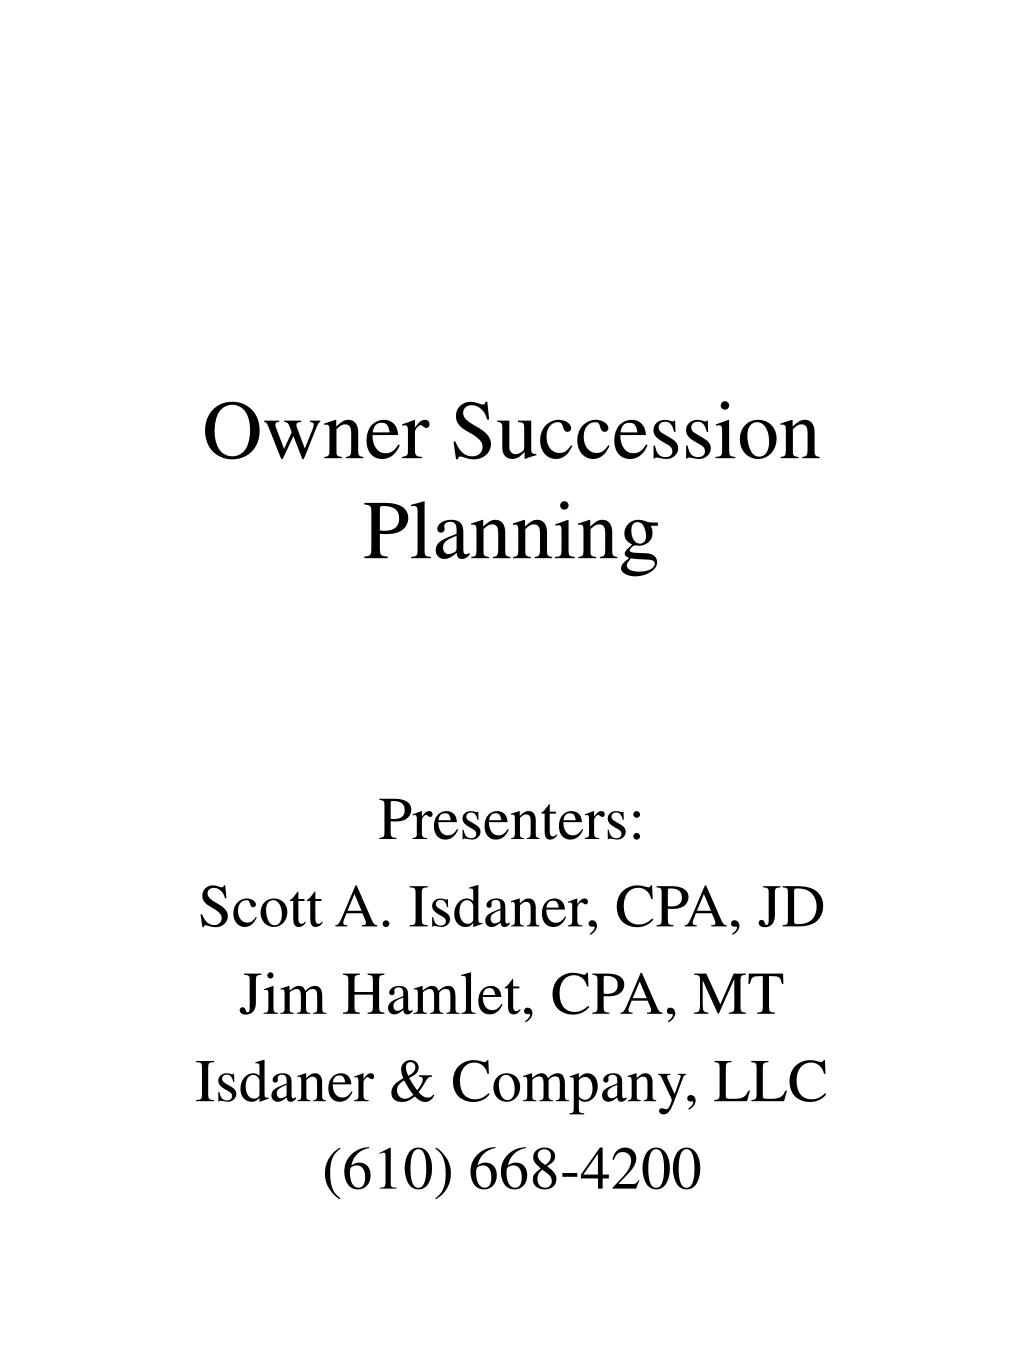 Owner Succession Planning